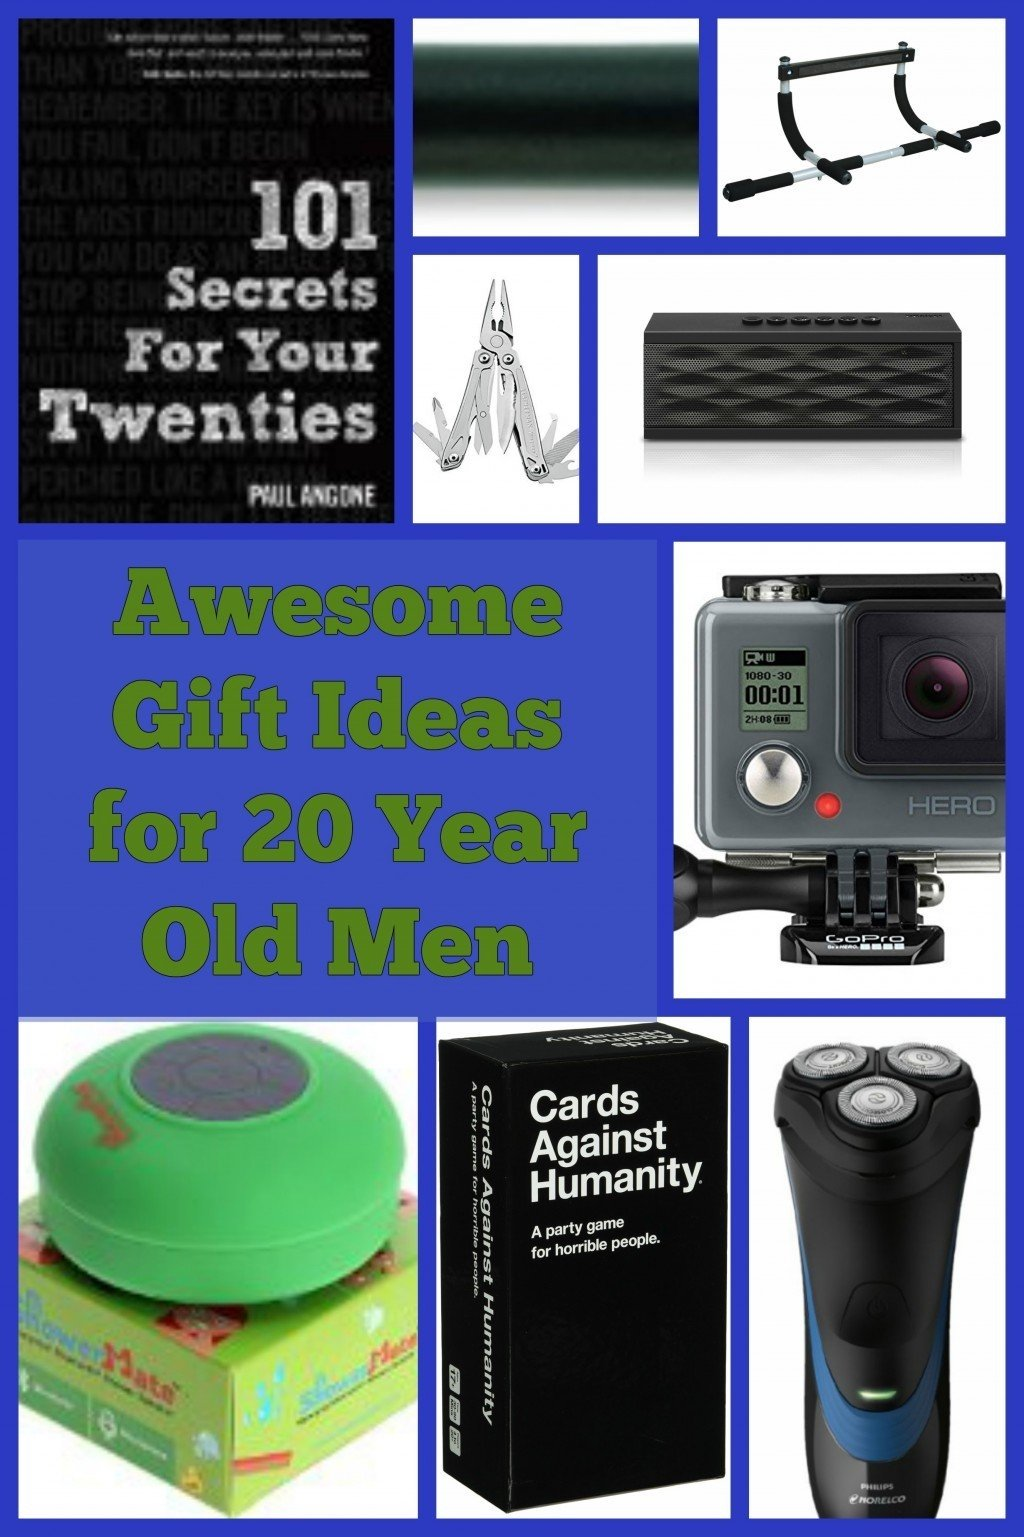 best gift ideas for 20 year old men | hubpages